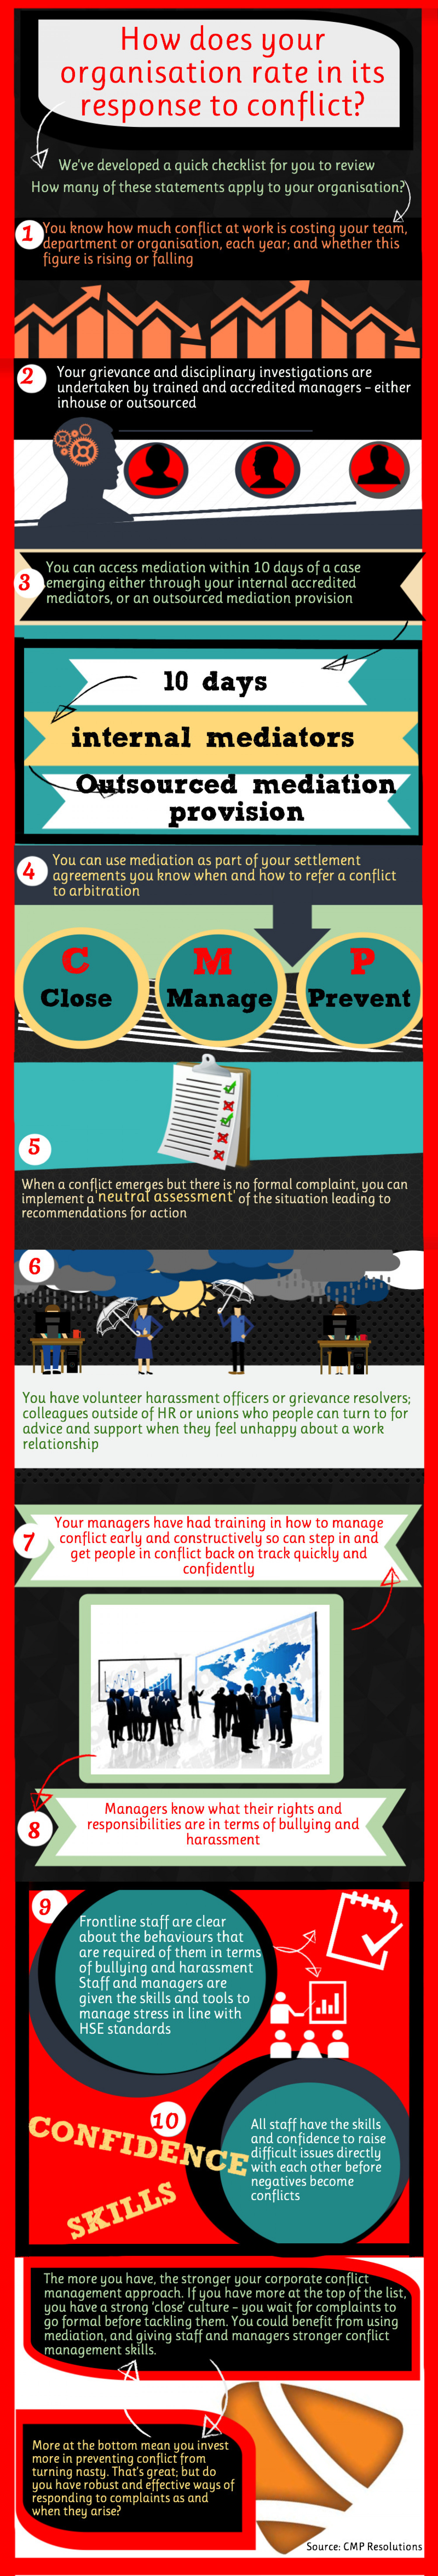 How does your organisation rate in its response to conflict? Infographic